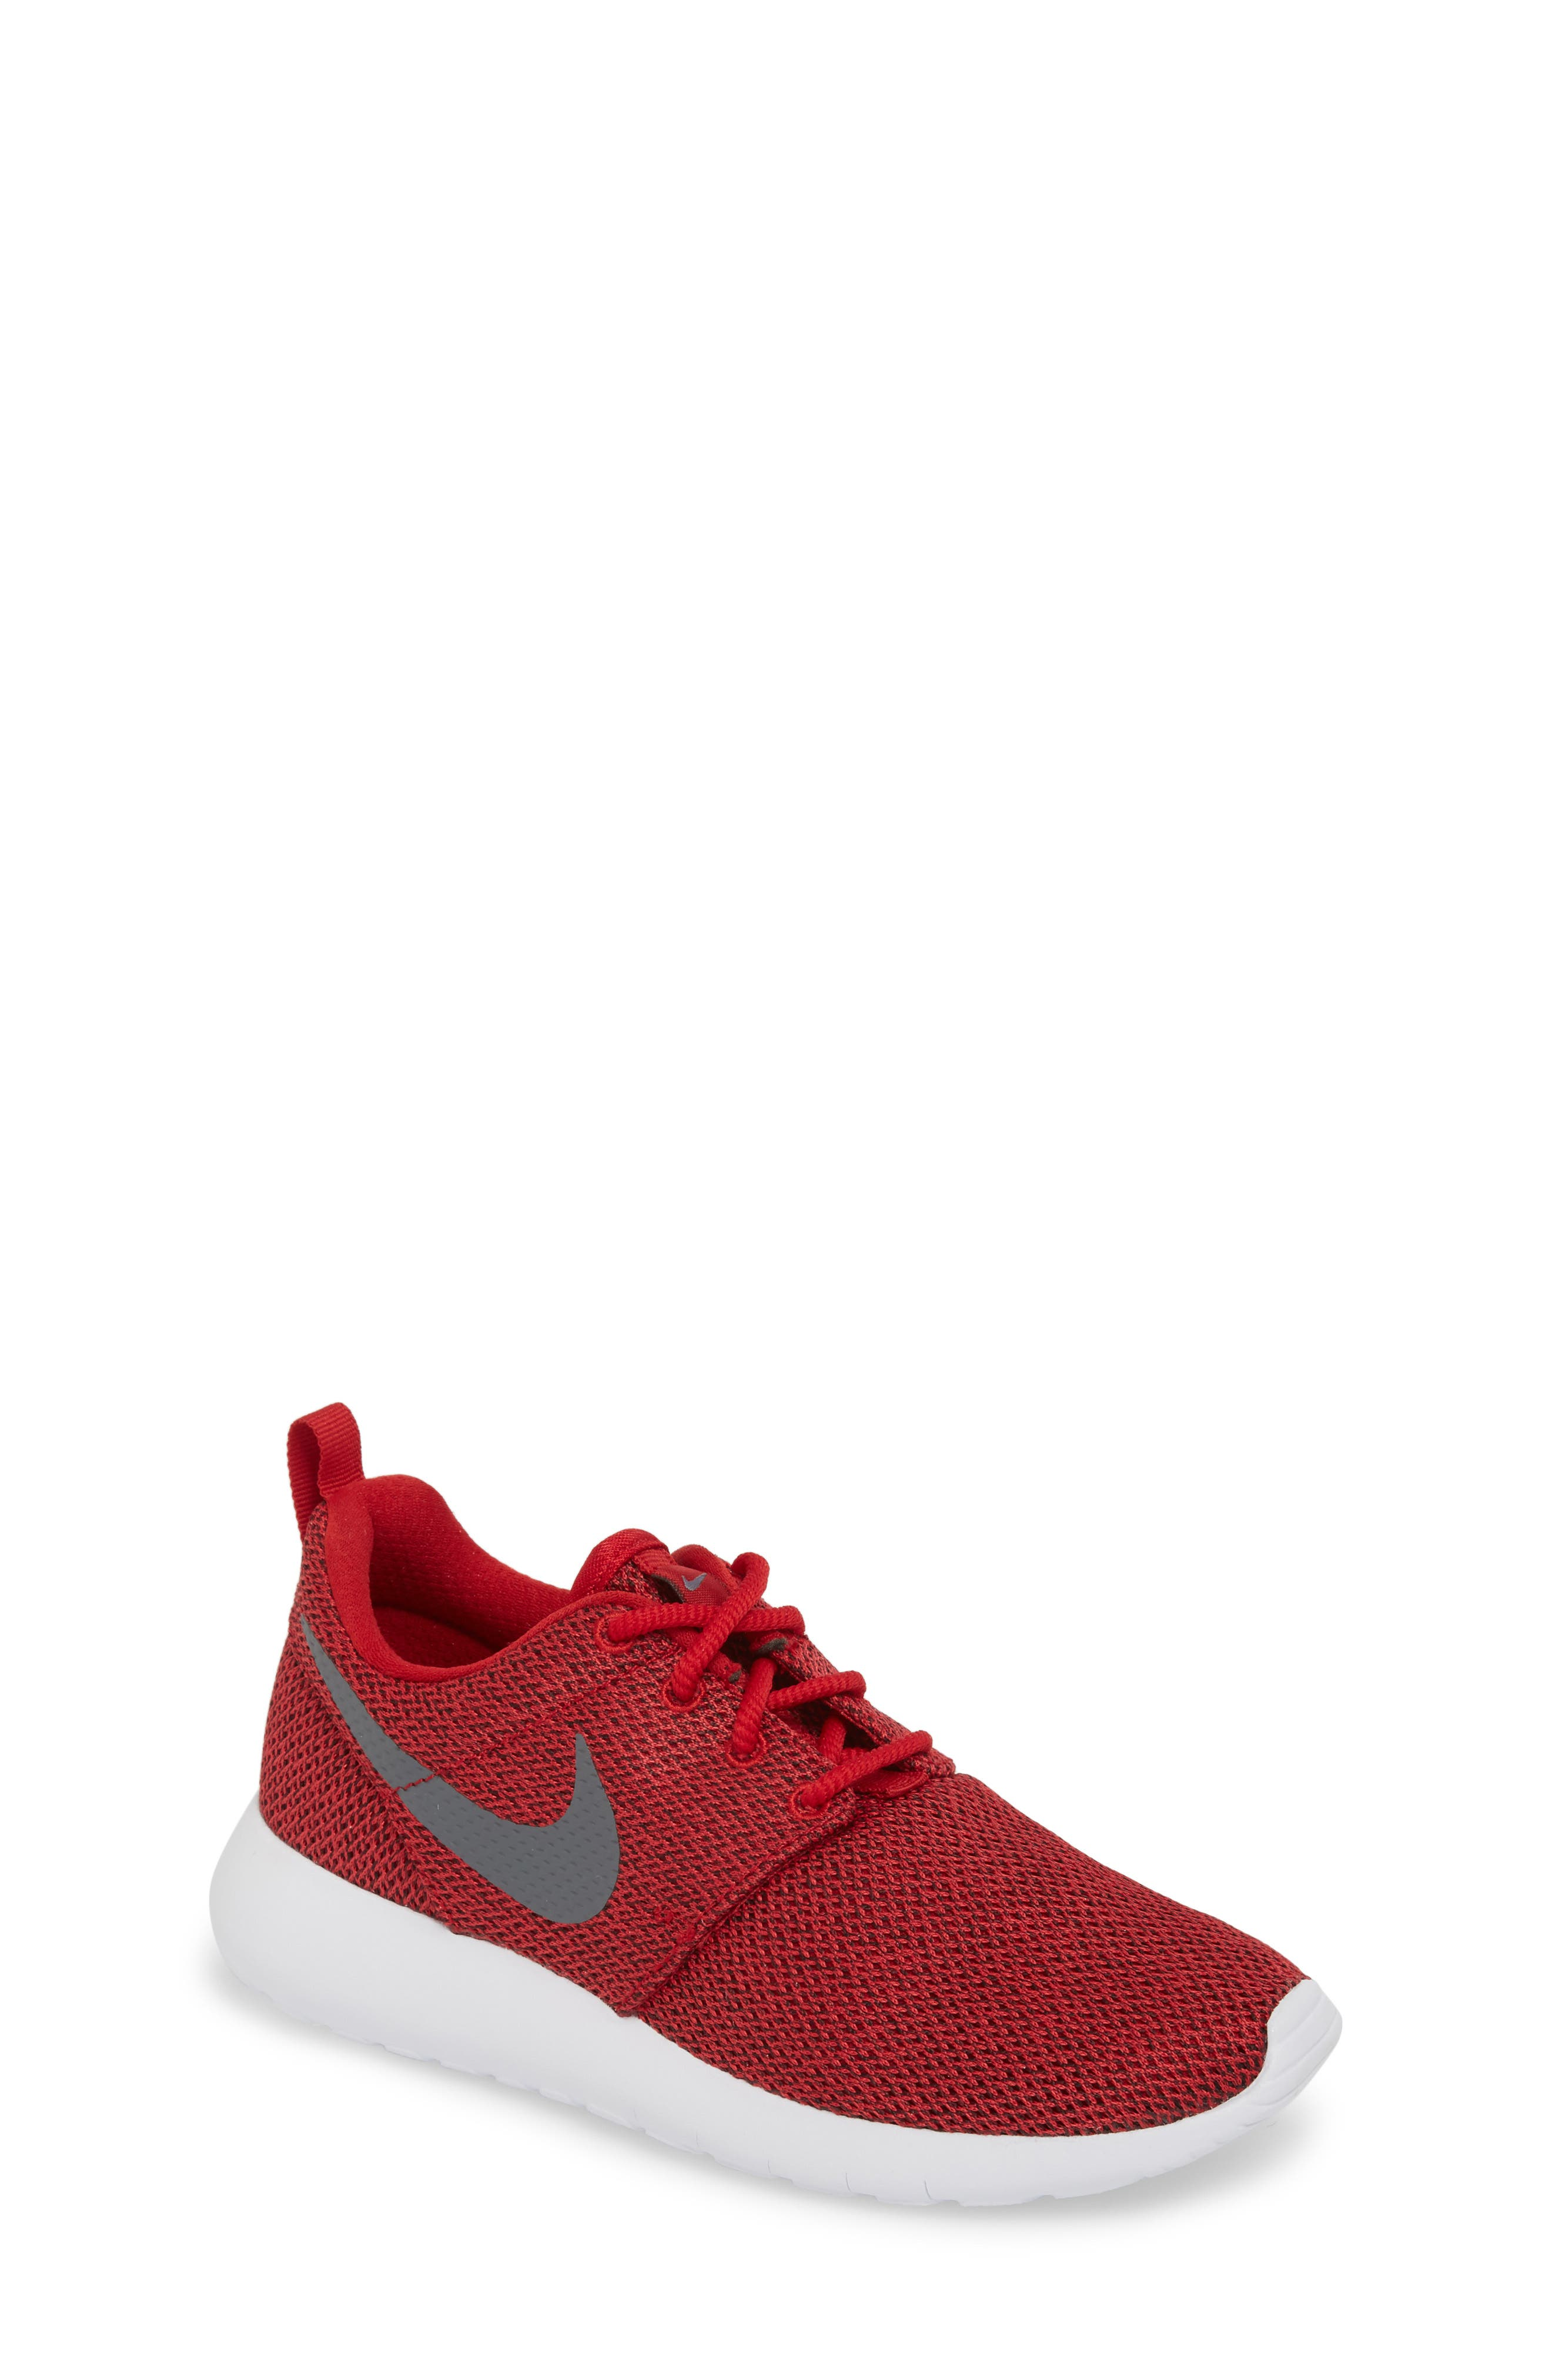 'Roshe Run' Sneaker,                             Main thumbnail 7, color,